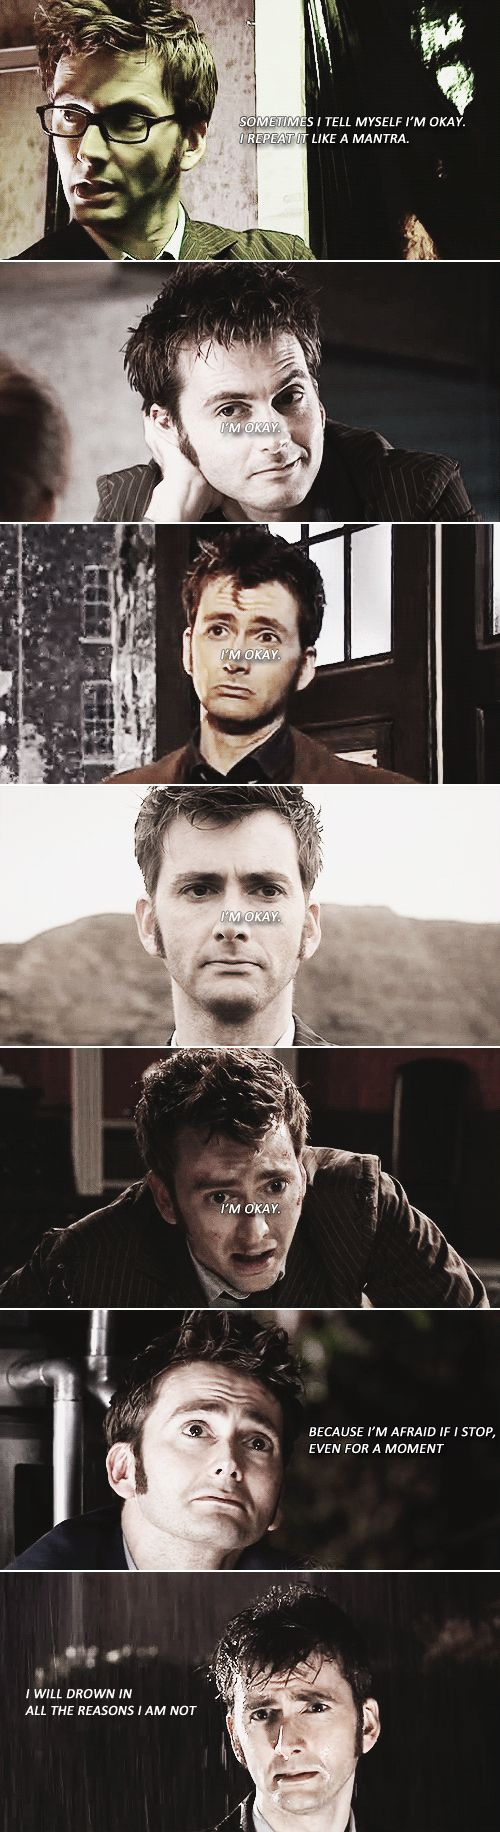 Sometimes I tell myself I'm okay. I repeat it like a mantra. I'm okay. I'm okay. I'm okay. I'm okay. Because I'm afraid if I stop, even for a moment, I will drown in all the reasons I am not. #doctorwho